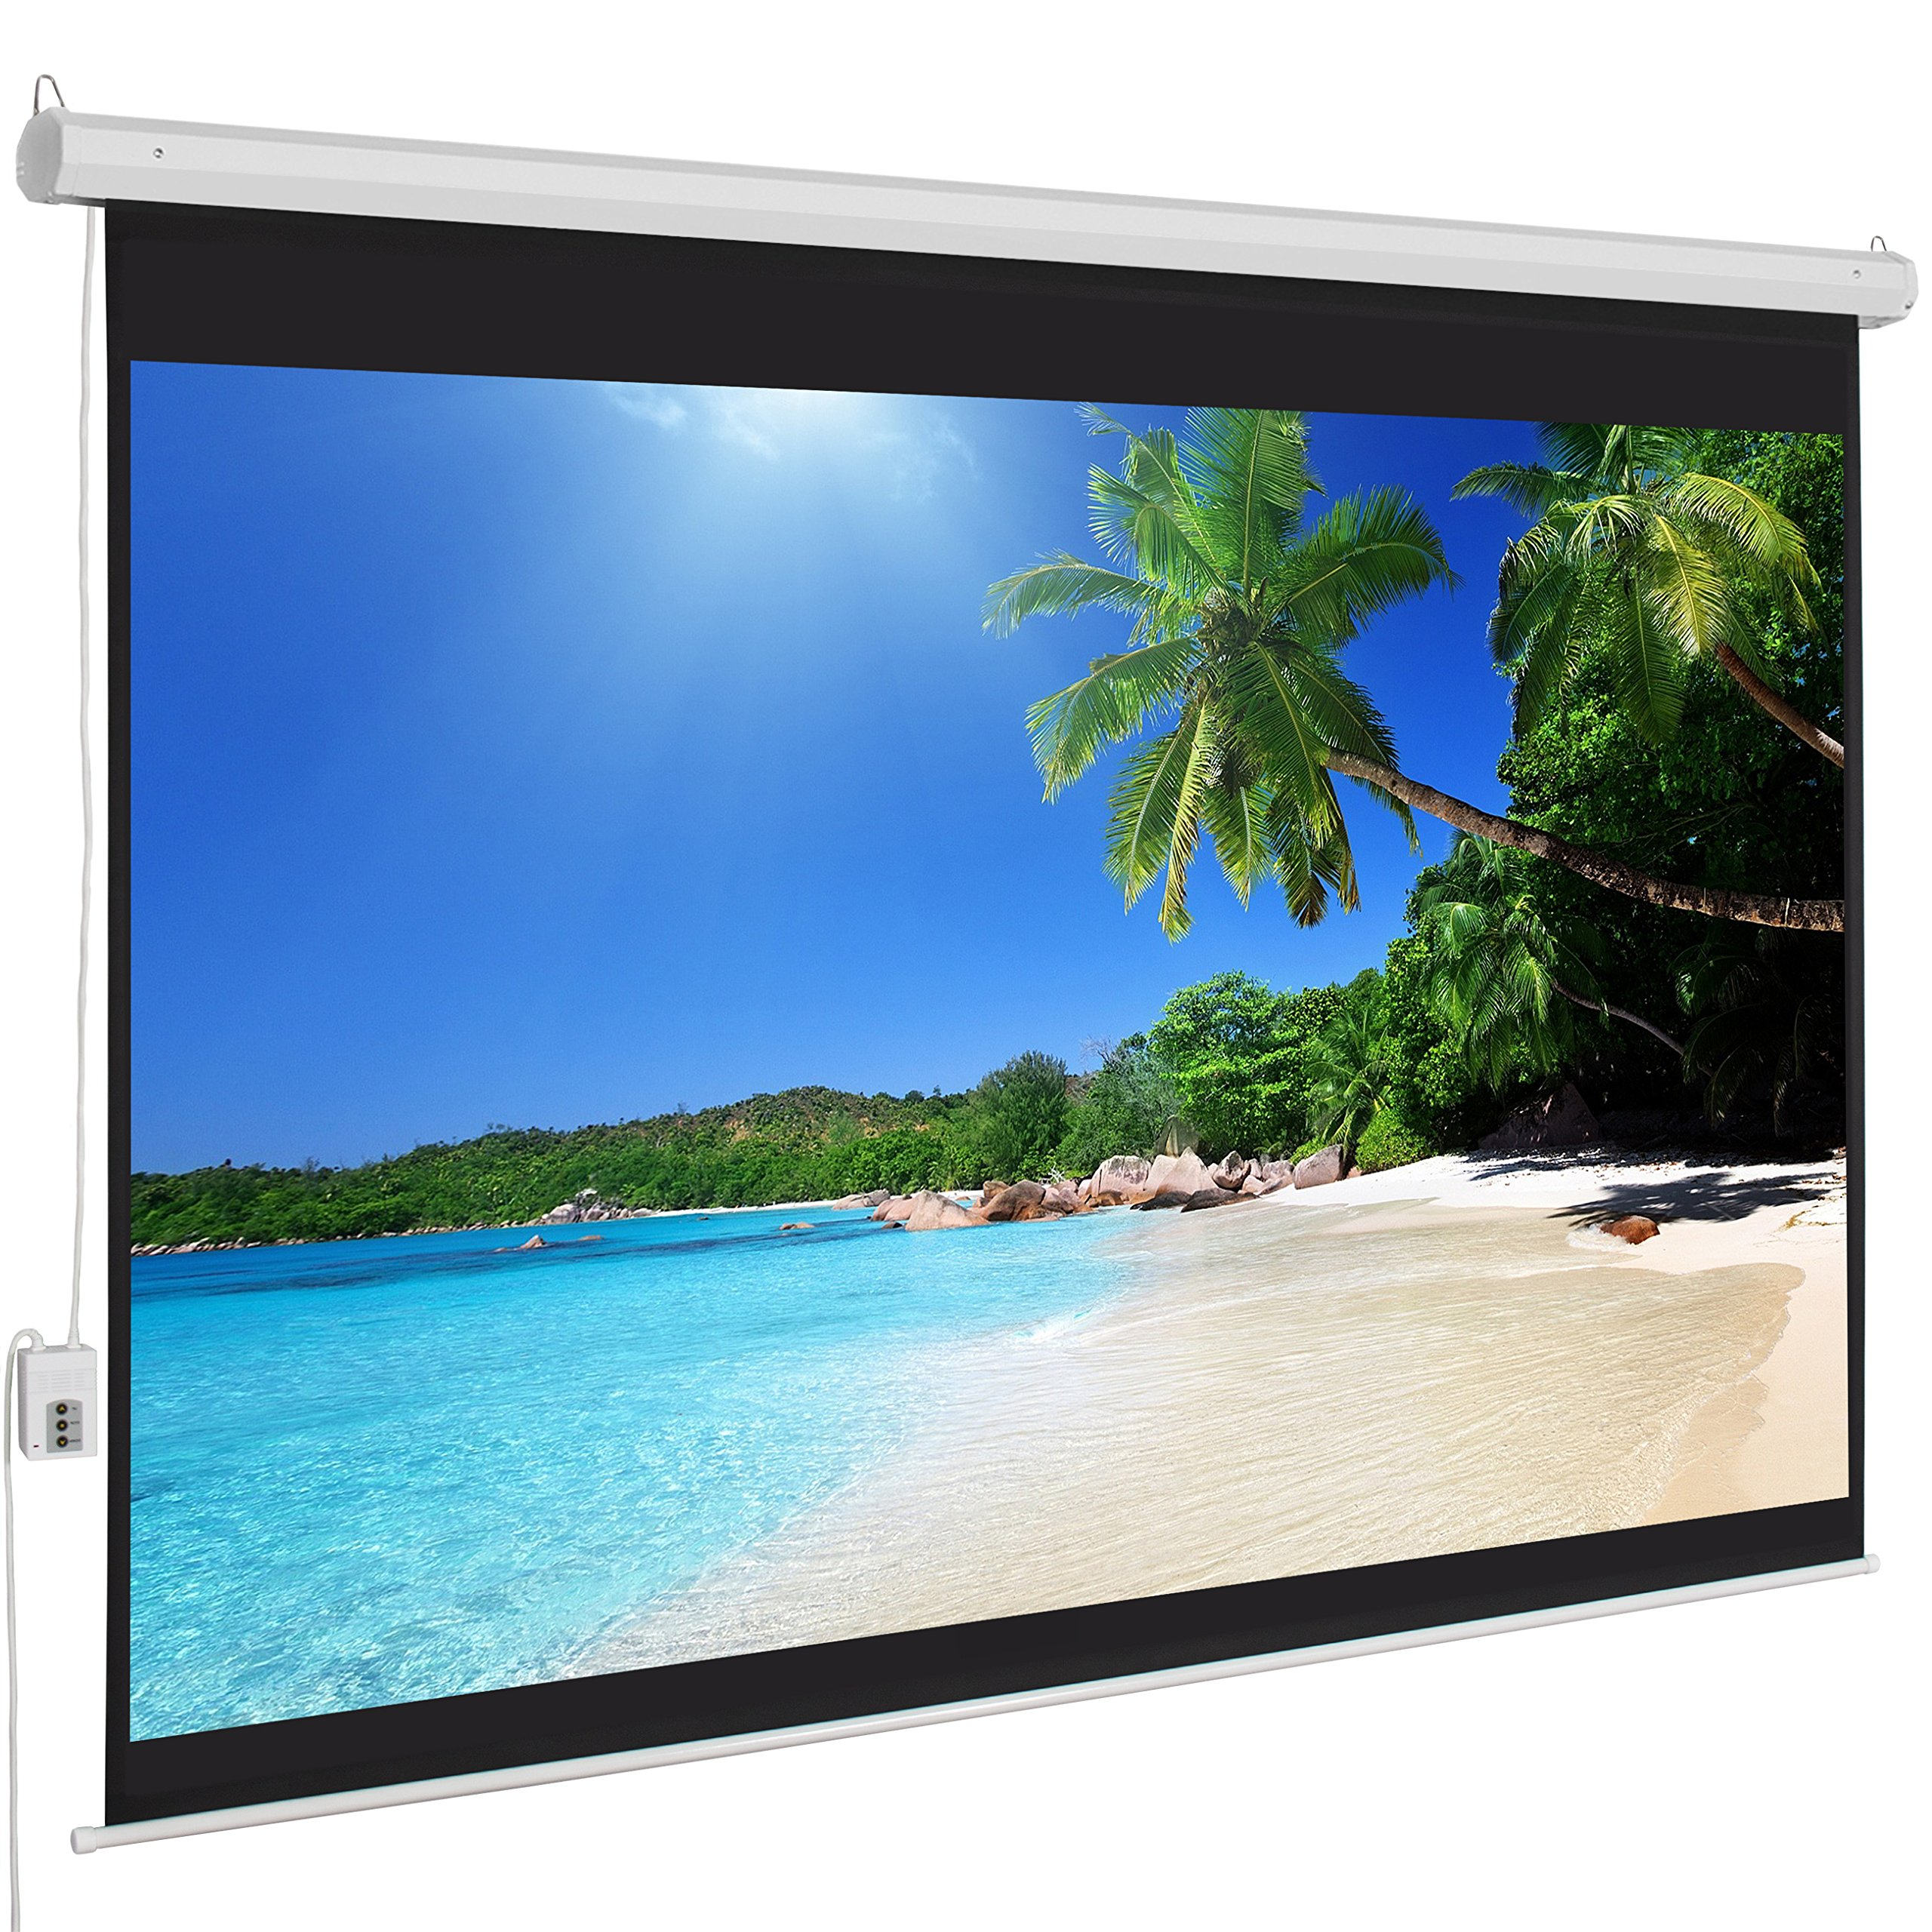 Best Choice Products Motorized Electric Auto HD Projection Screen, 100-Inch, 4:3 Display by Best Choice Products